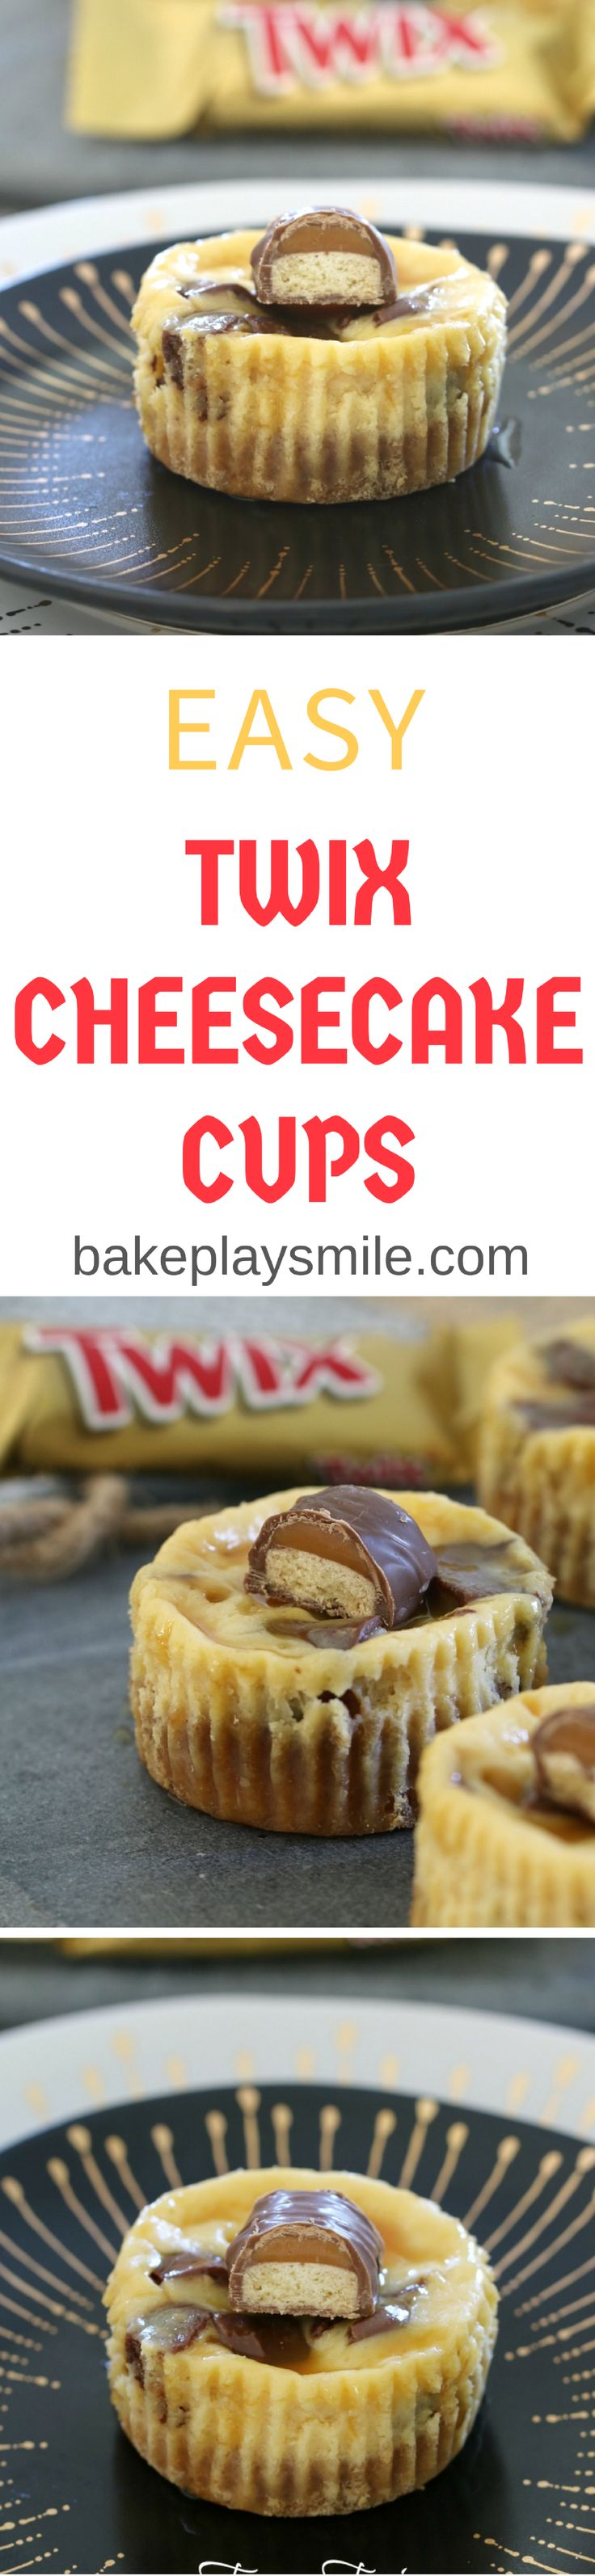 Twix Cheesecakes Cups !!! Easiest Twix Cheesecake Cups!!! Delicious mini caramel cheesecakes with chunks of Twix bars and extra caramel sauce!! These would be soooo delicious and completely addictive!